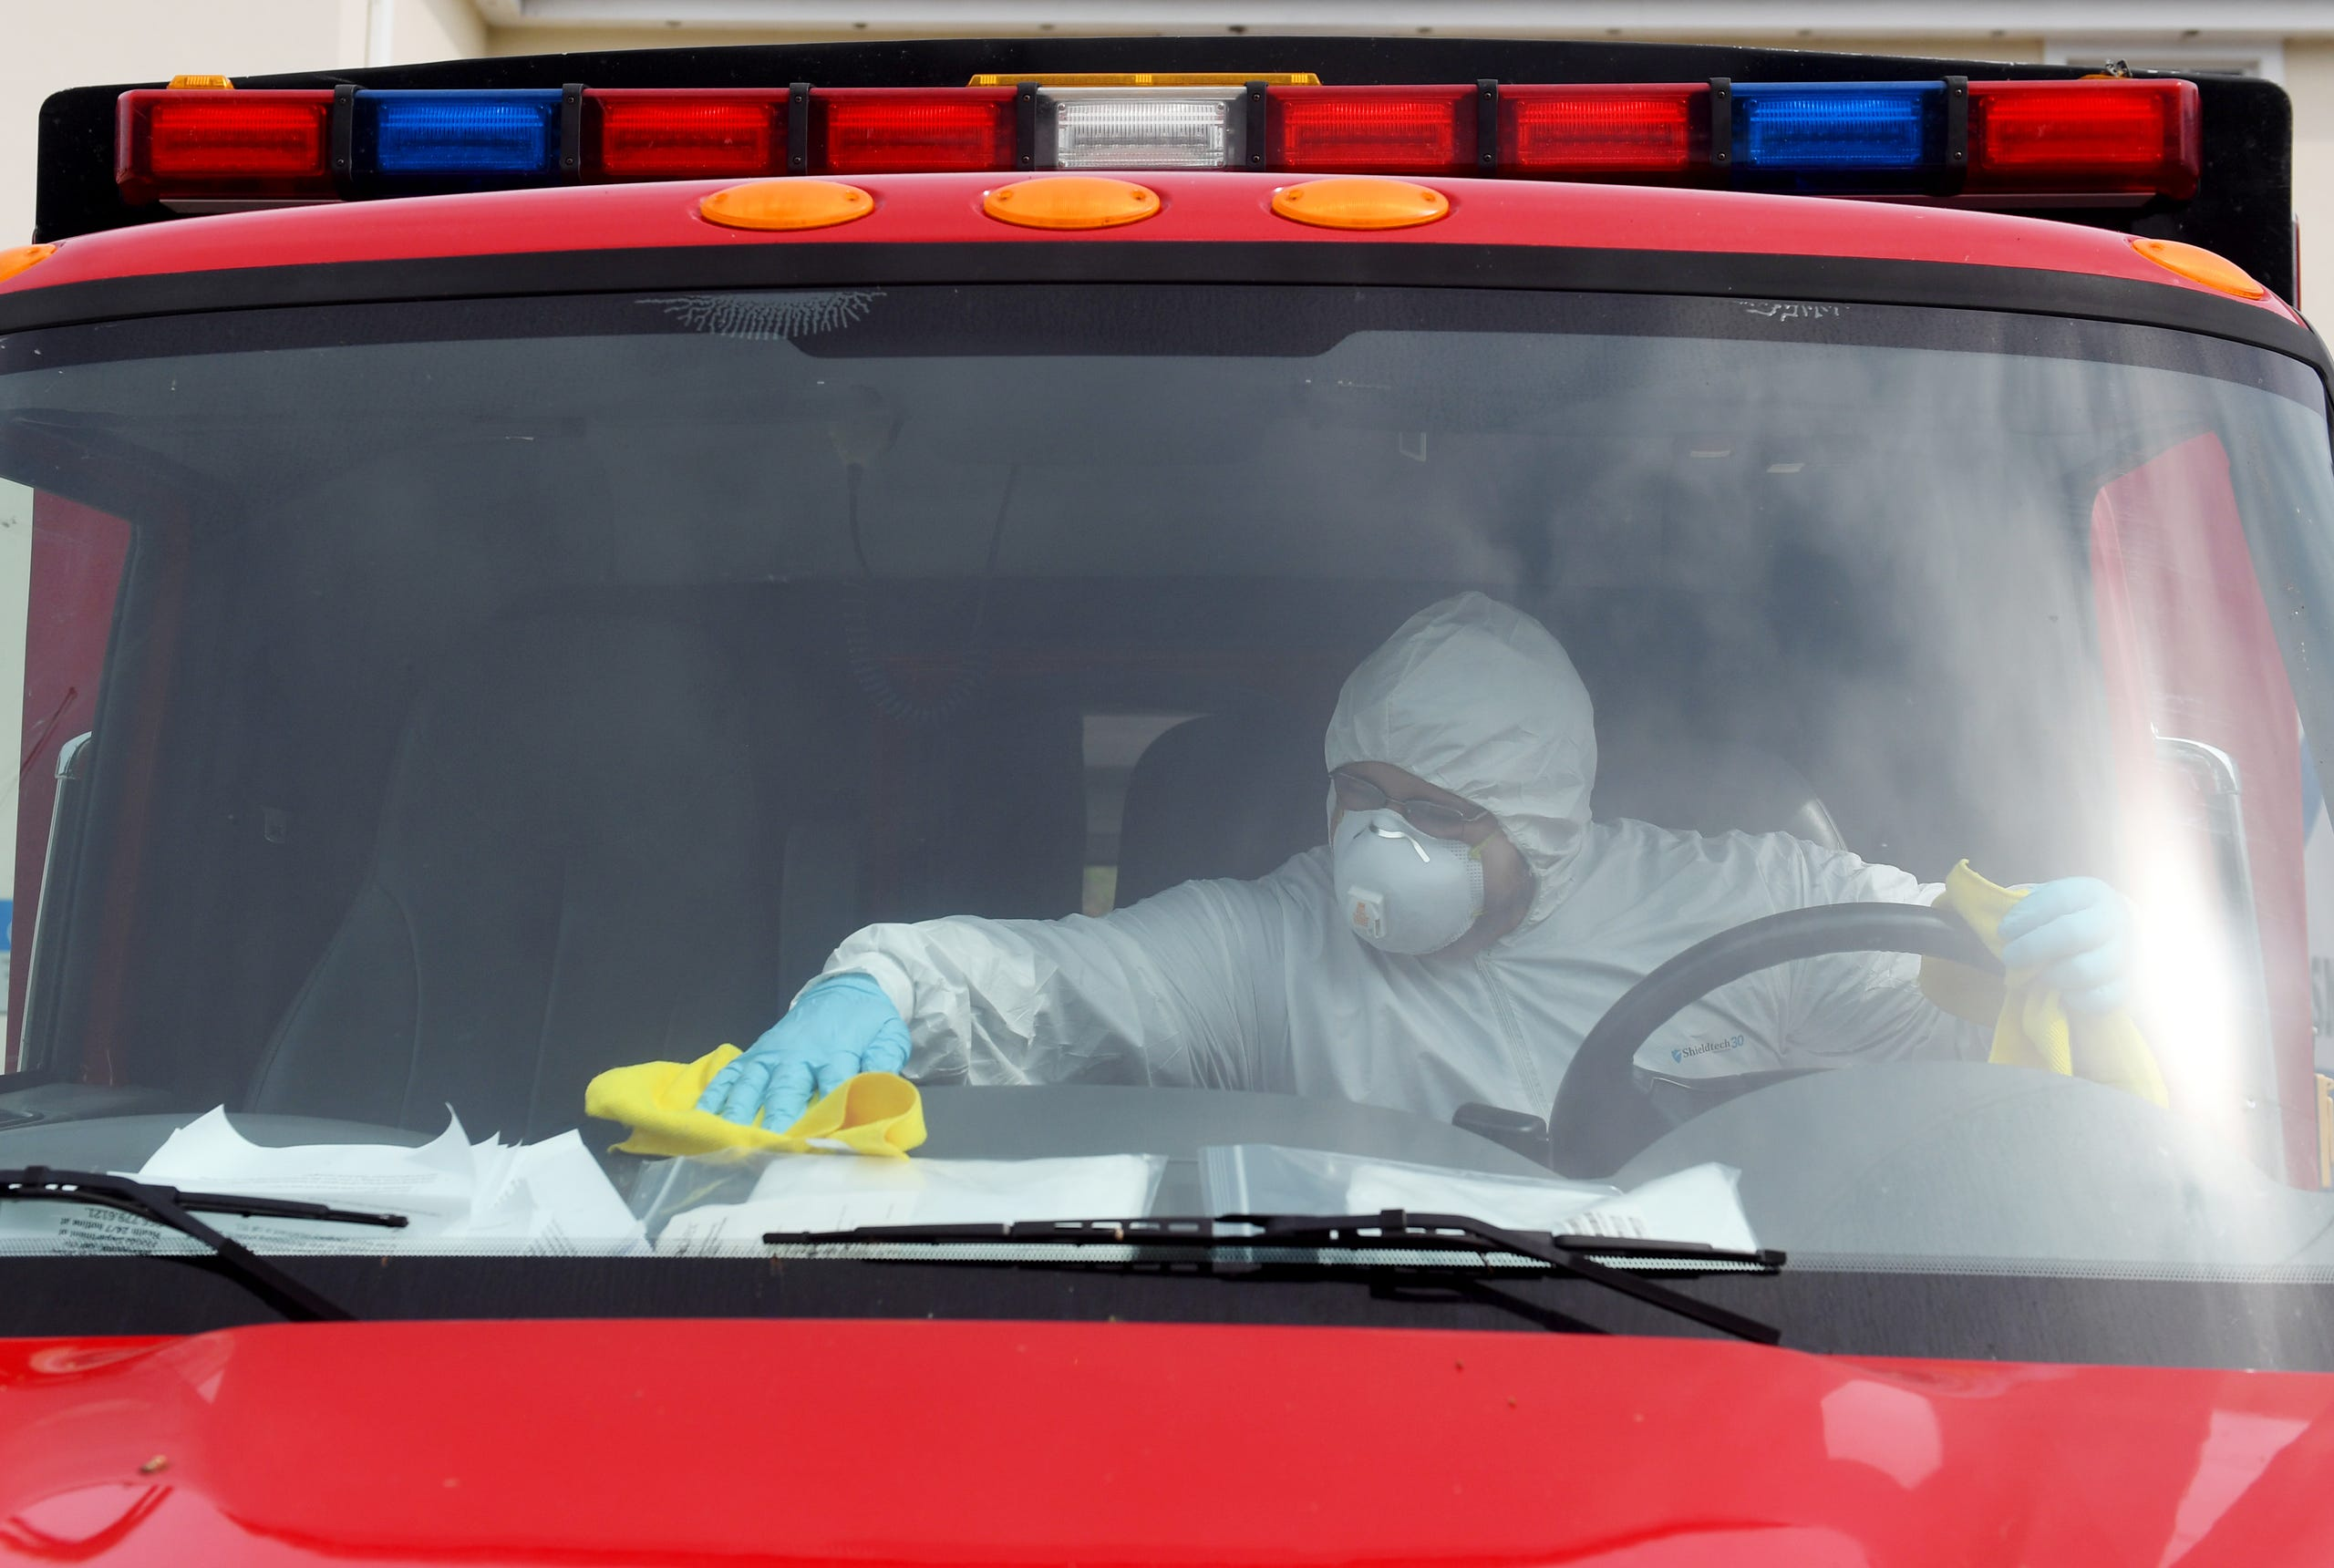 "John Lowie and Rich Danzig, of Jarvis Property Restoration, use a disinfectant spray to clean the two ambulance units of the Indian River Shores Public Safety Department on Tuesday, April 14, 2020, in Indian River Shores. The company comes a few times per week to clean the inside of the units that may have come in contact with someone carrying COVID-19. ""This is a complementary service we are providing for the department and local first responders,"" said Matthew Johns, operations manager with Jarvis Property Restoration. ""We're using a fogging method, which gives us better application of the disinfectant. We're cleaning the inside of rigs and offices, anywhere there are high traffic areas."" Crews from Jarvis are also providing the cleaning service to the Indian River County Sheriff's Office."